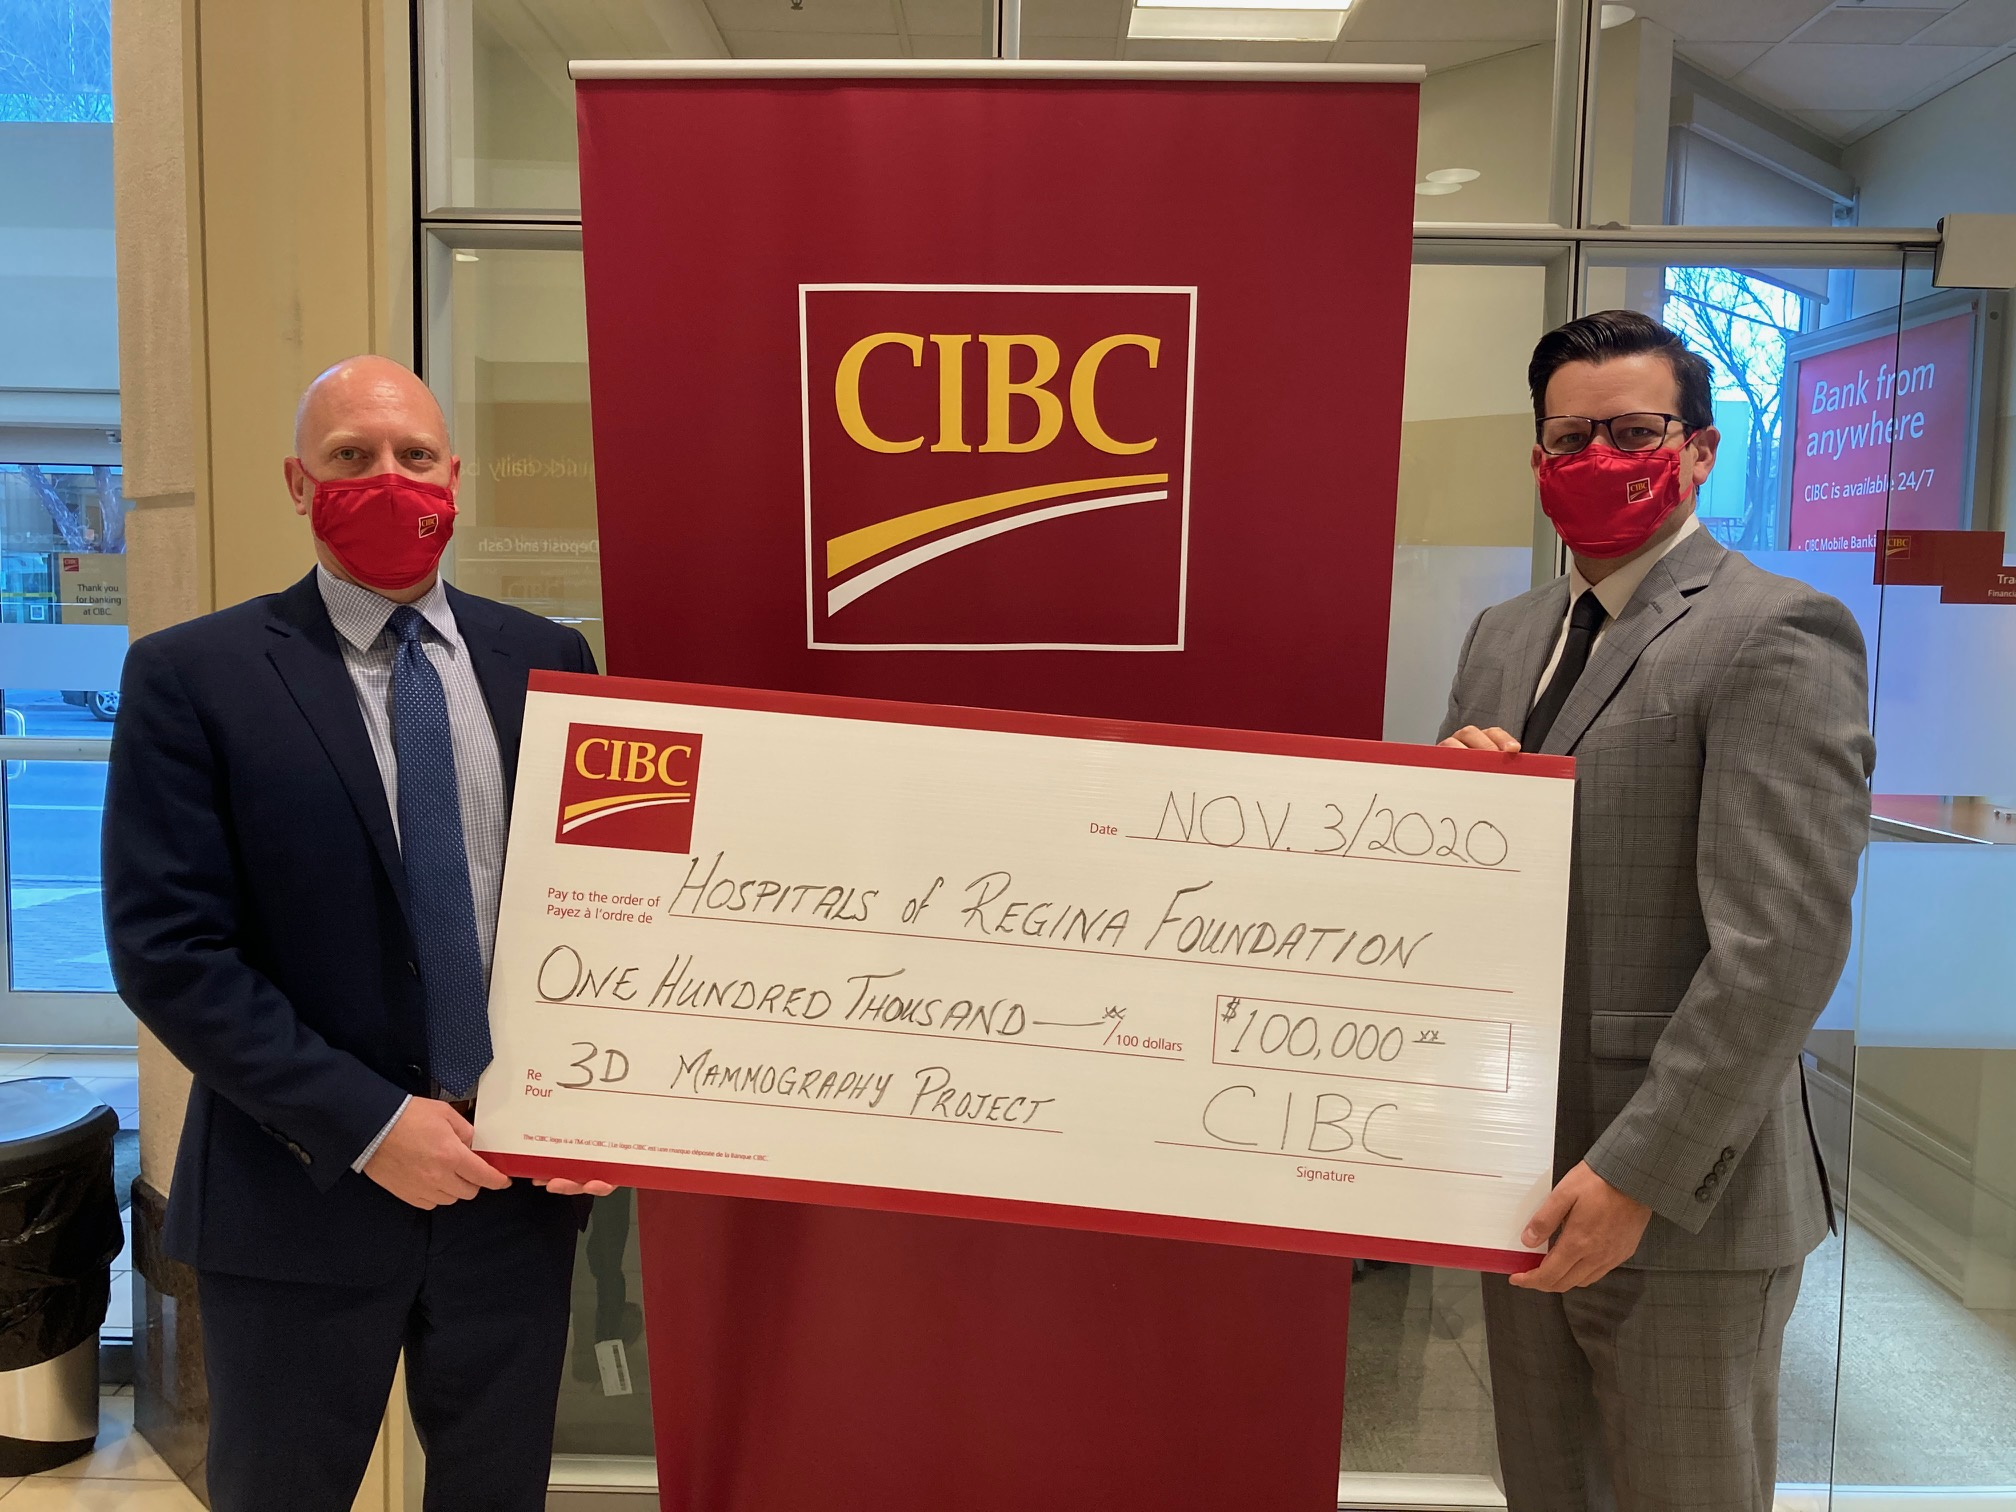 CIBC Joins the Fight Against Breast Cancer in Saskatchewan